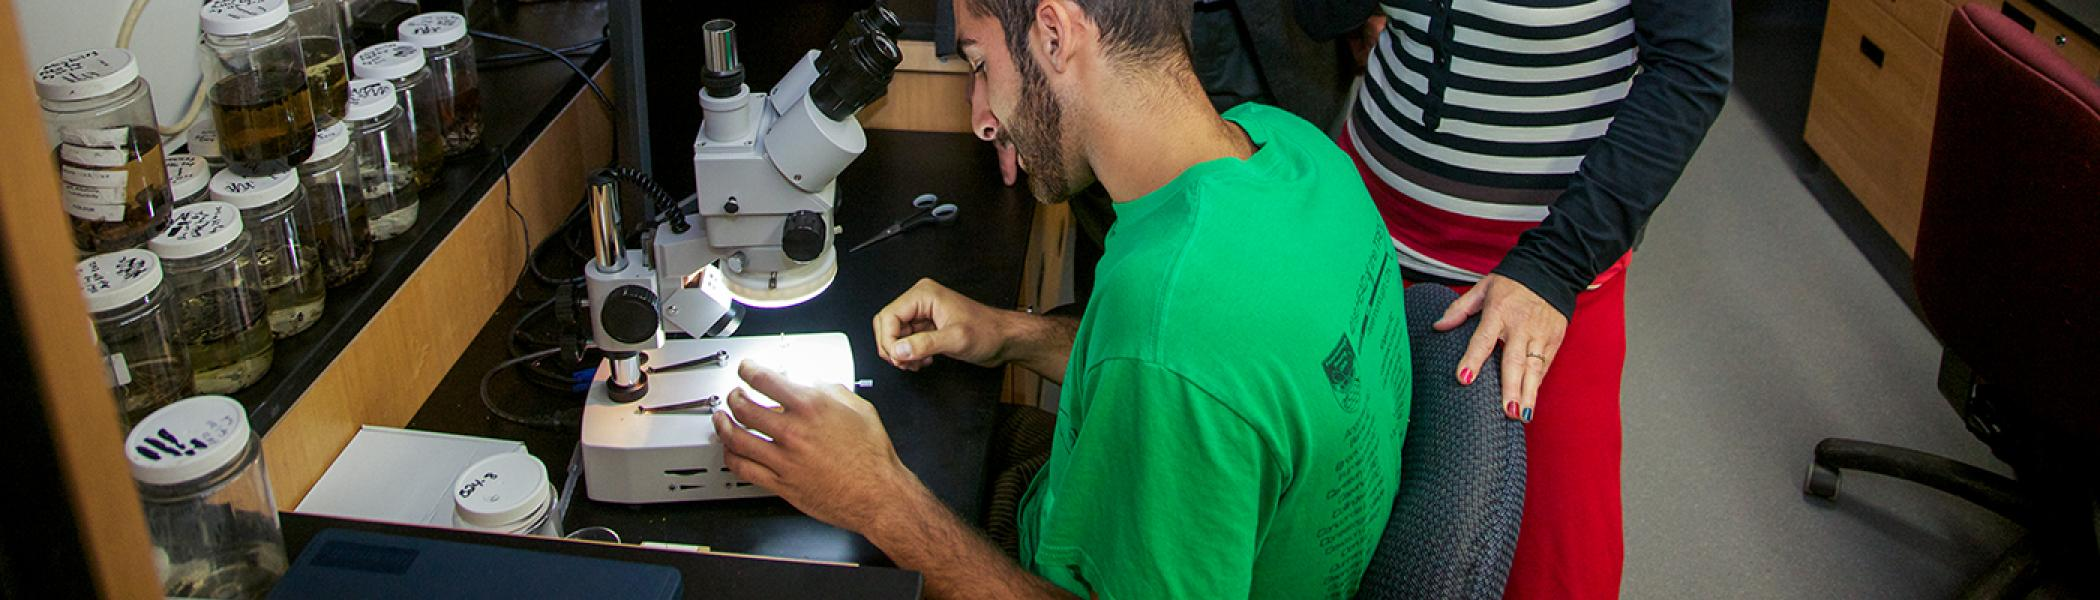 A professor sitting at a microscope in a biology lab looking at a sample in a glass dish